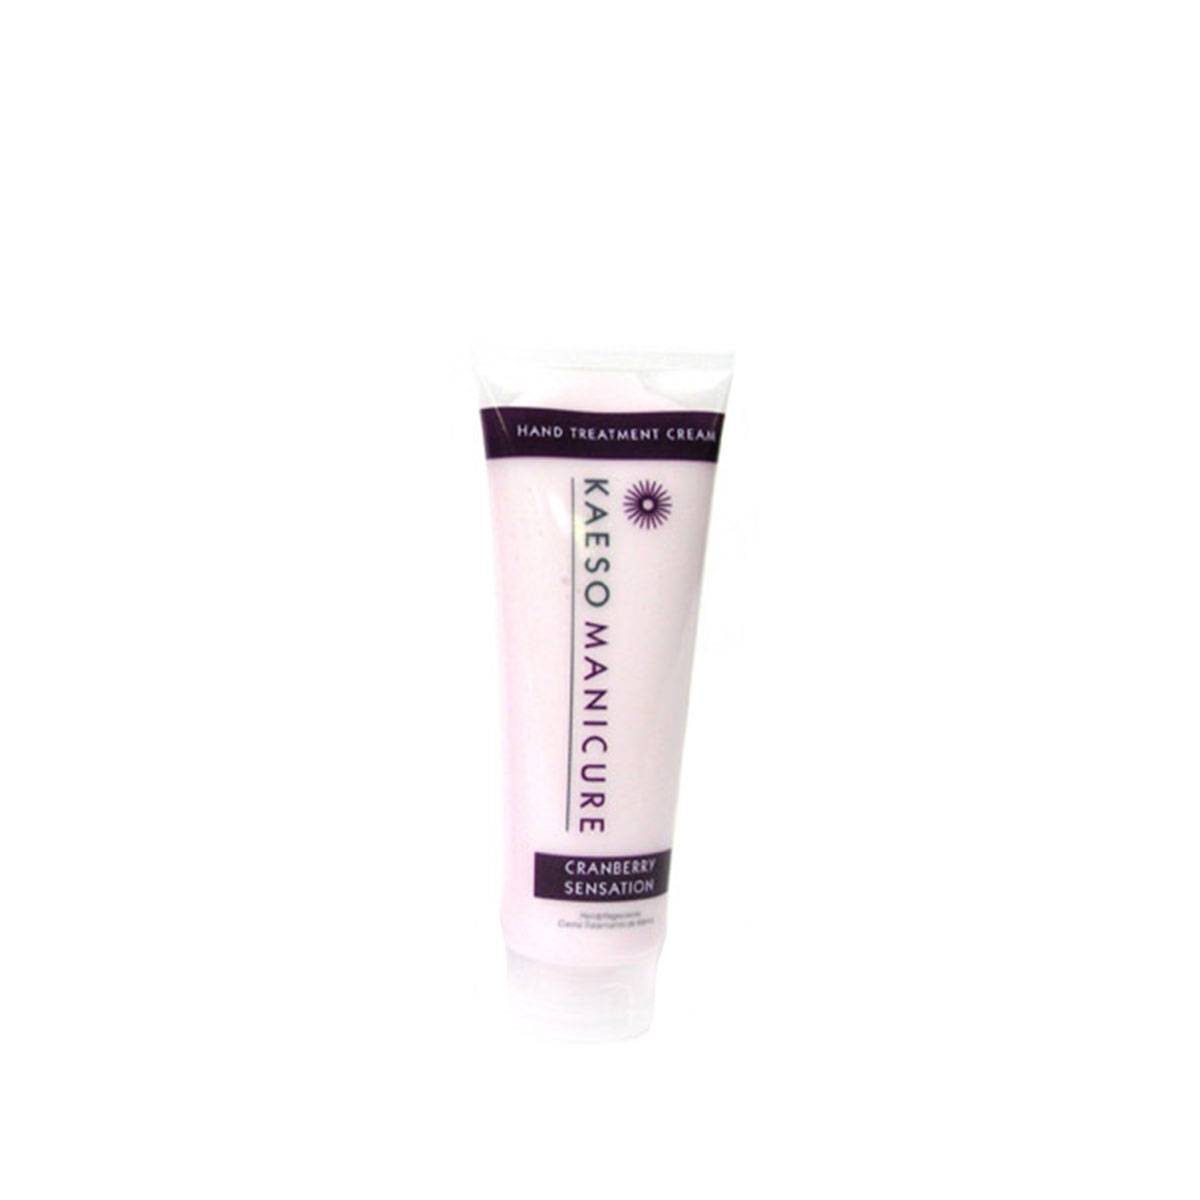 Cranberry Sensation Hand Treatment Cream 250ml*cat